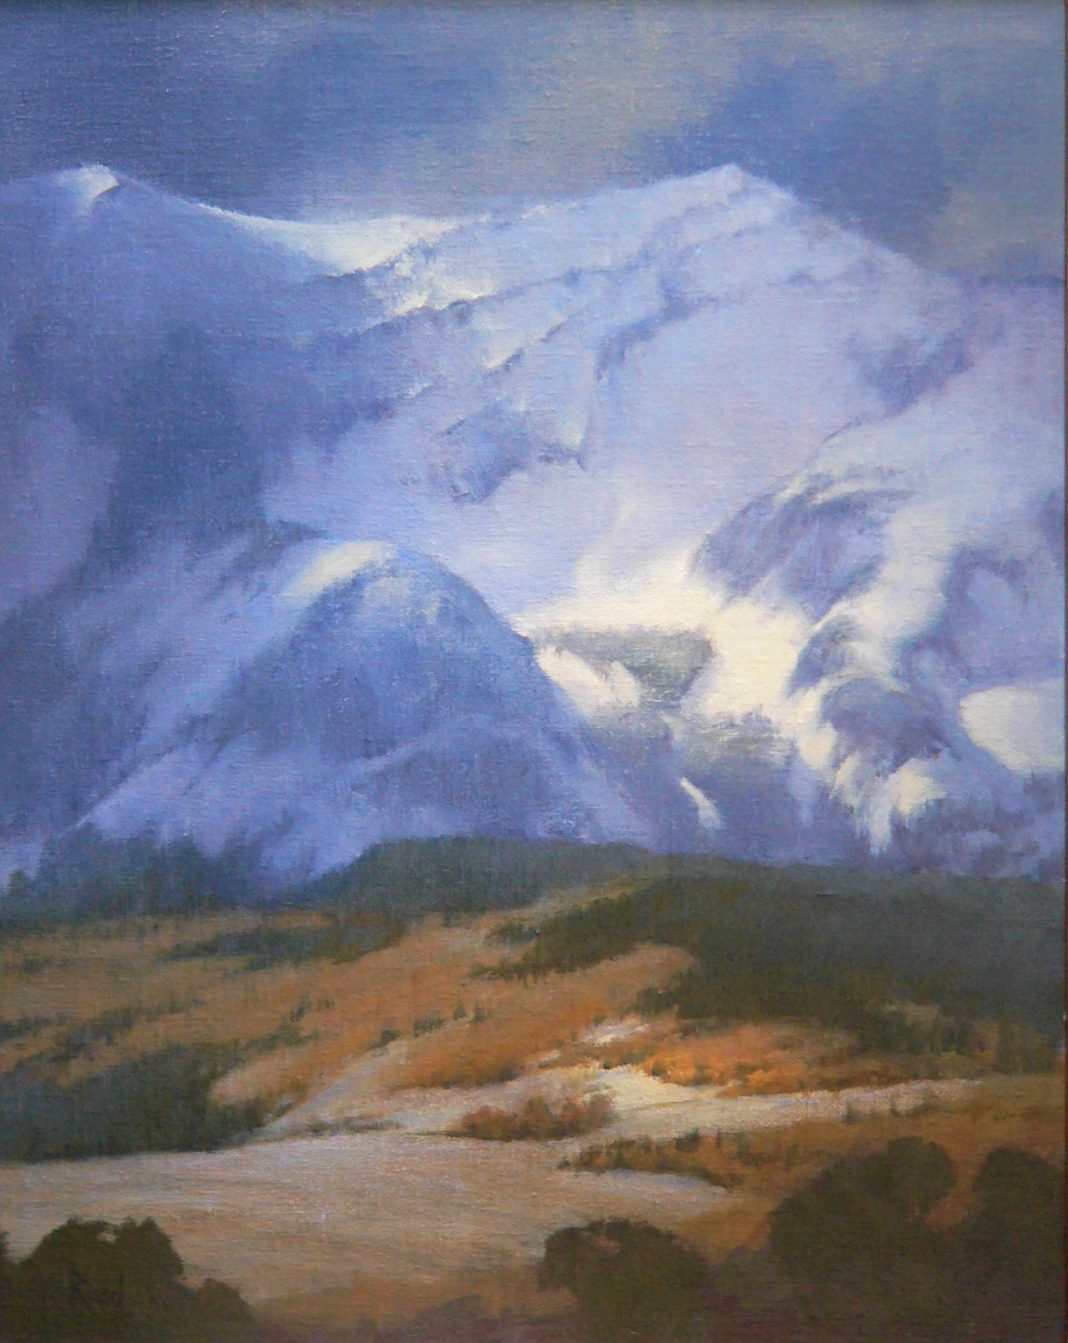 David Riedel High Pasture snow mountains landscape oil painting